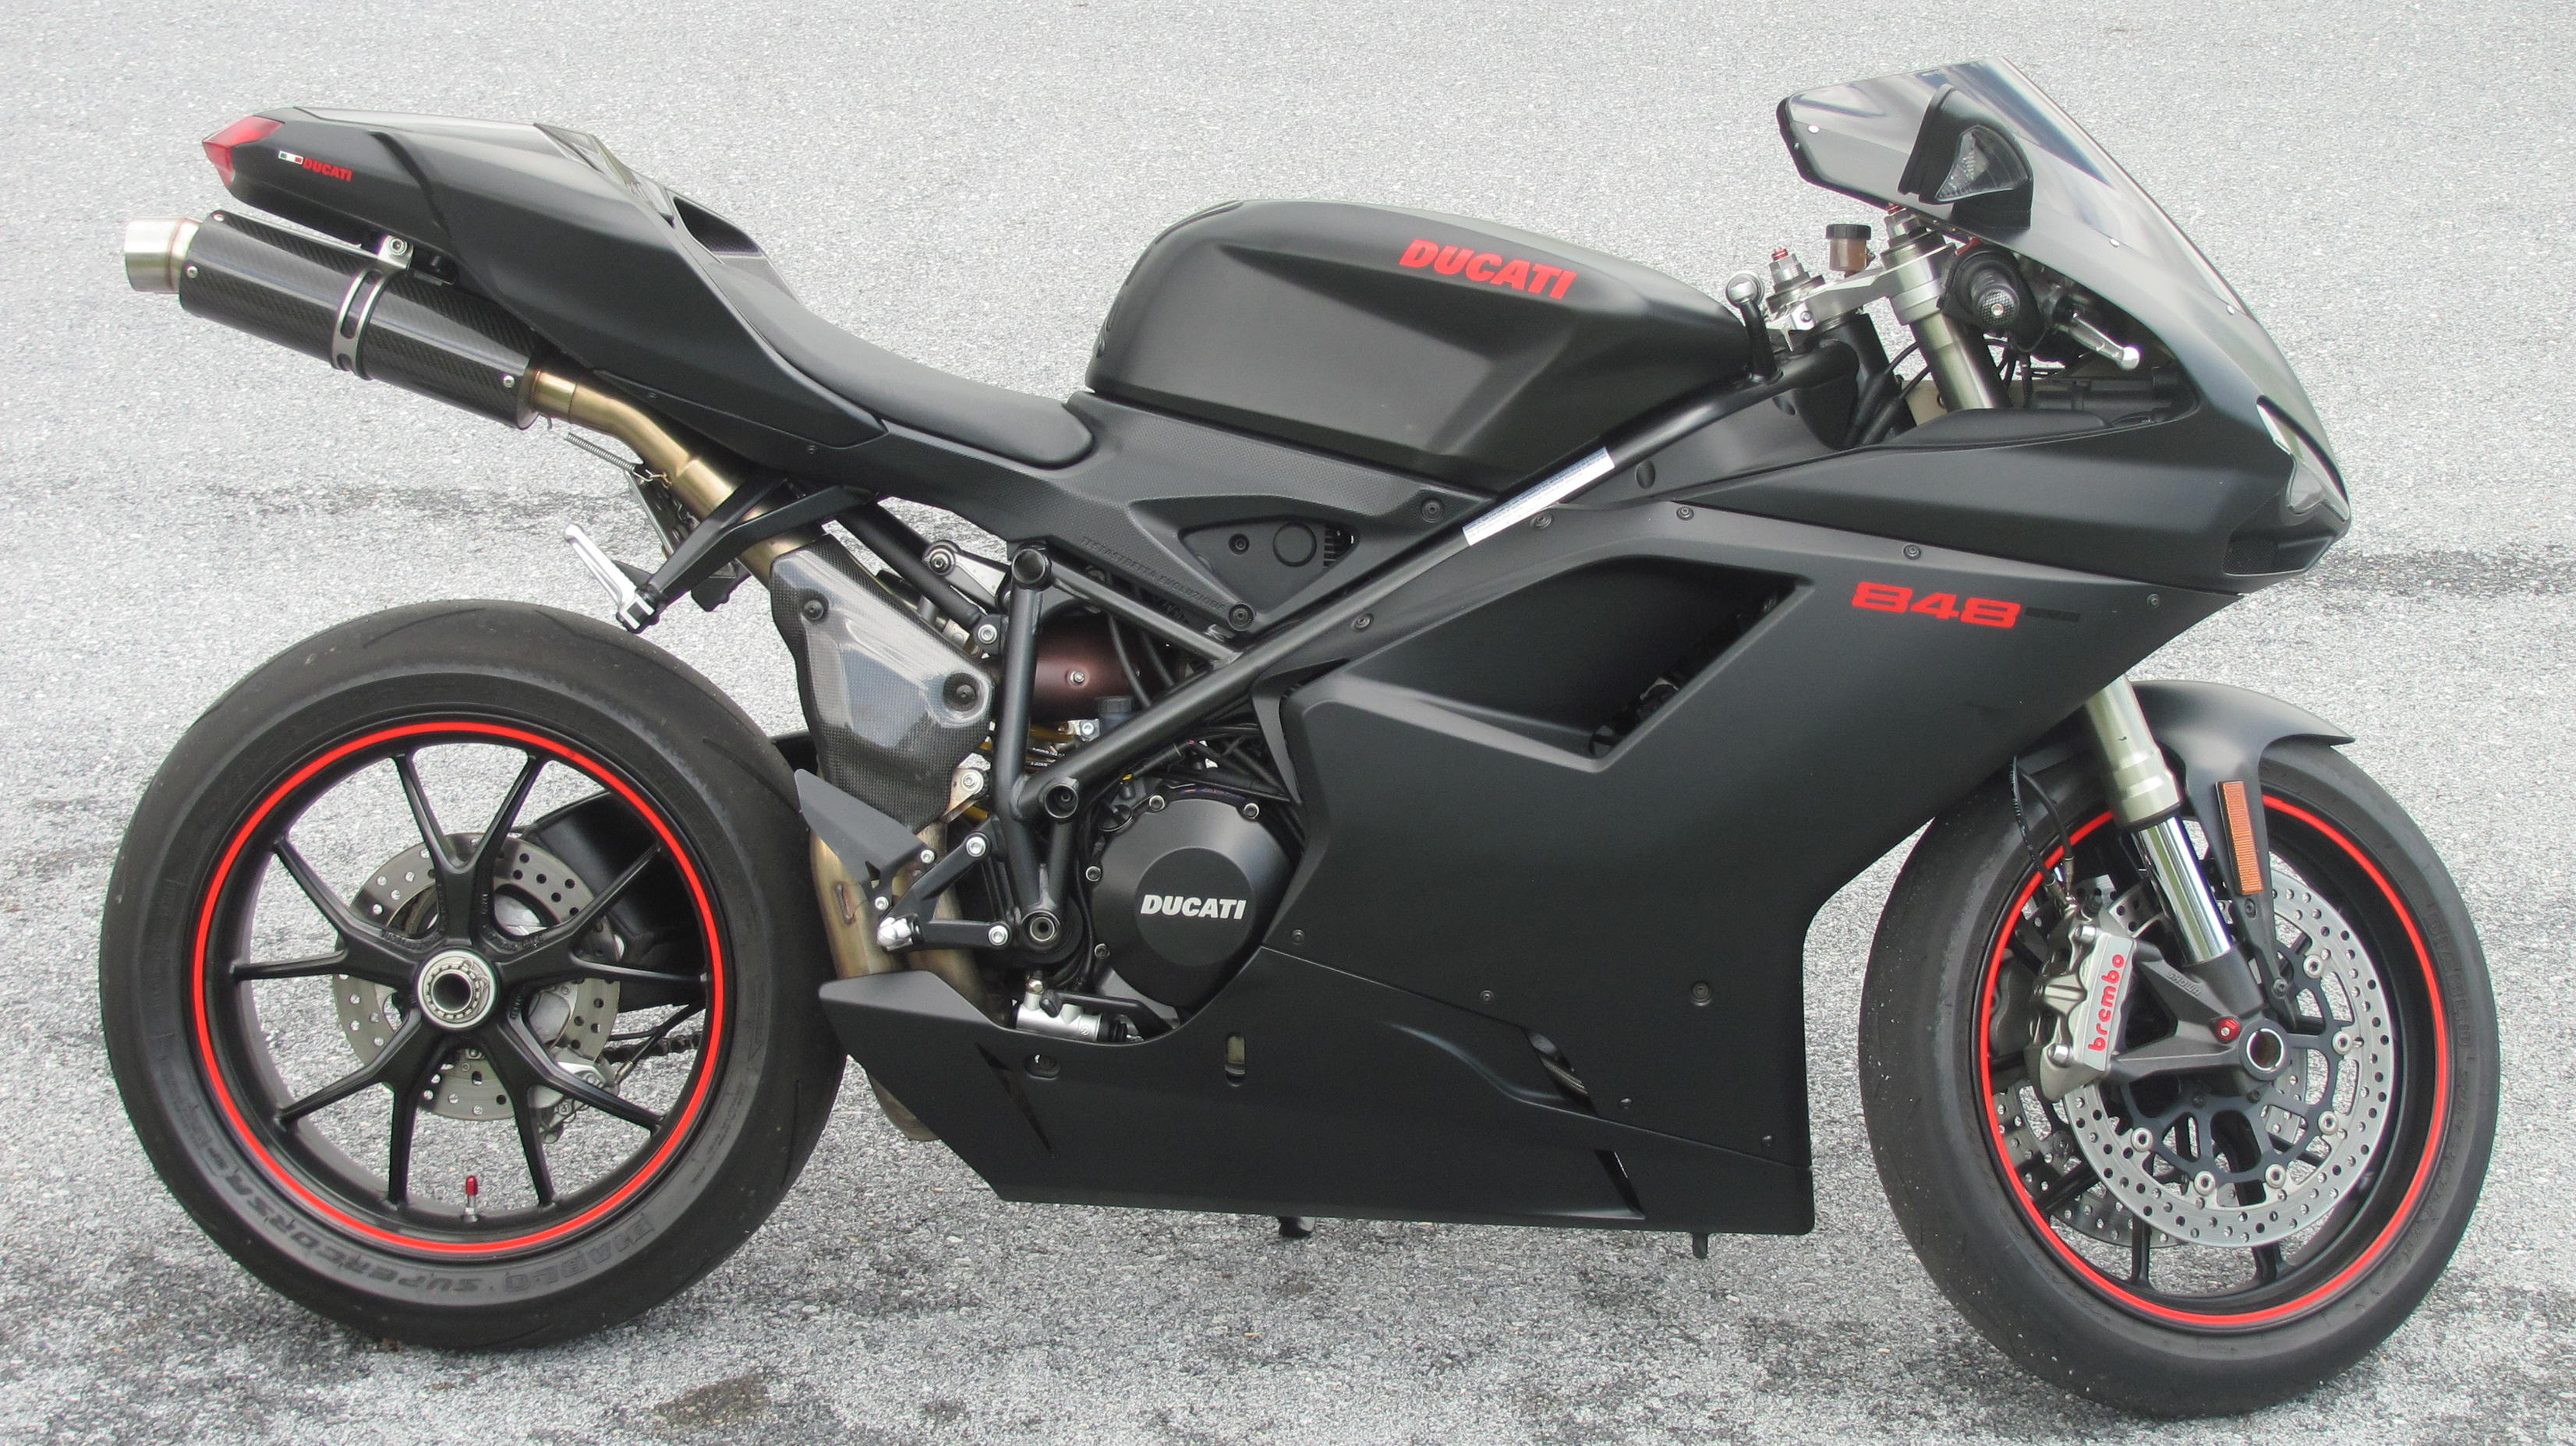 ducati ducati 848 evo dark moto zombdrive com. Black Bedroom Furniture Sets. Home Design Ideas